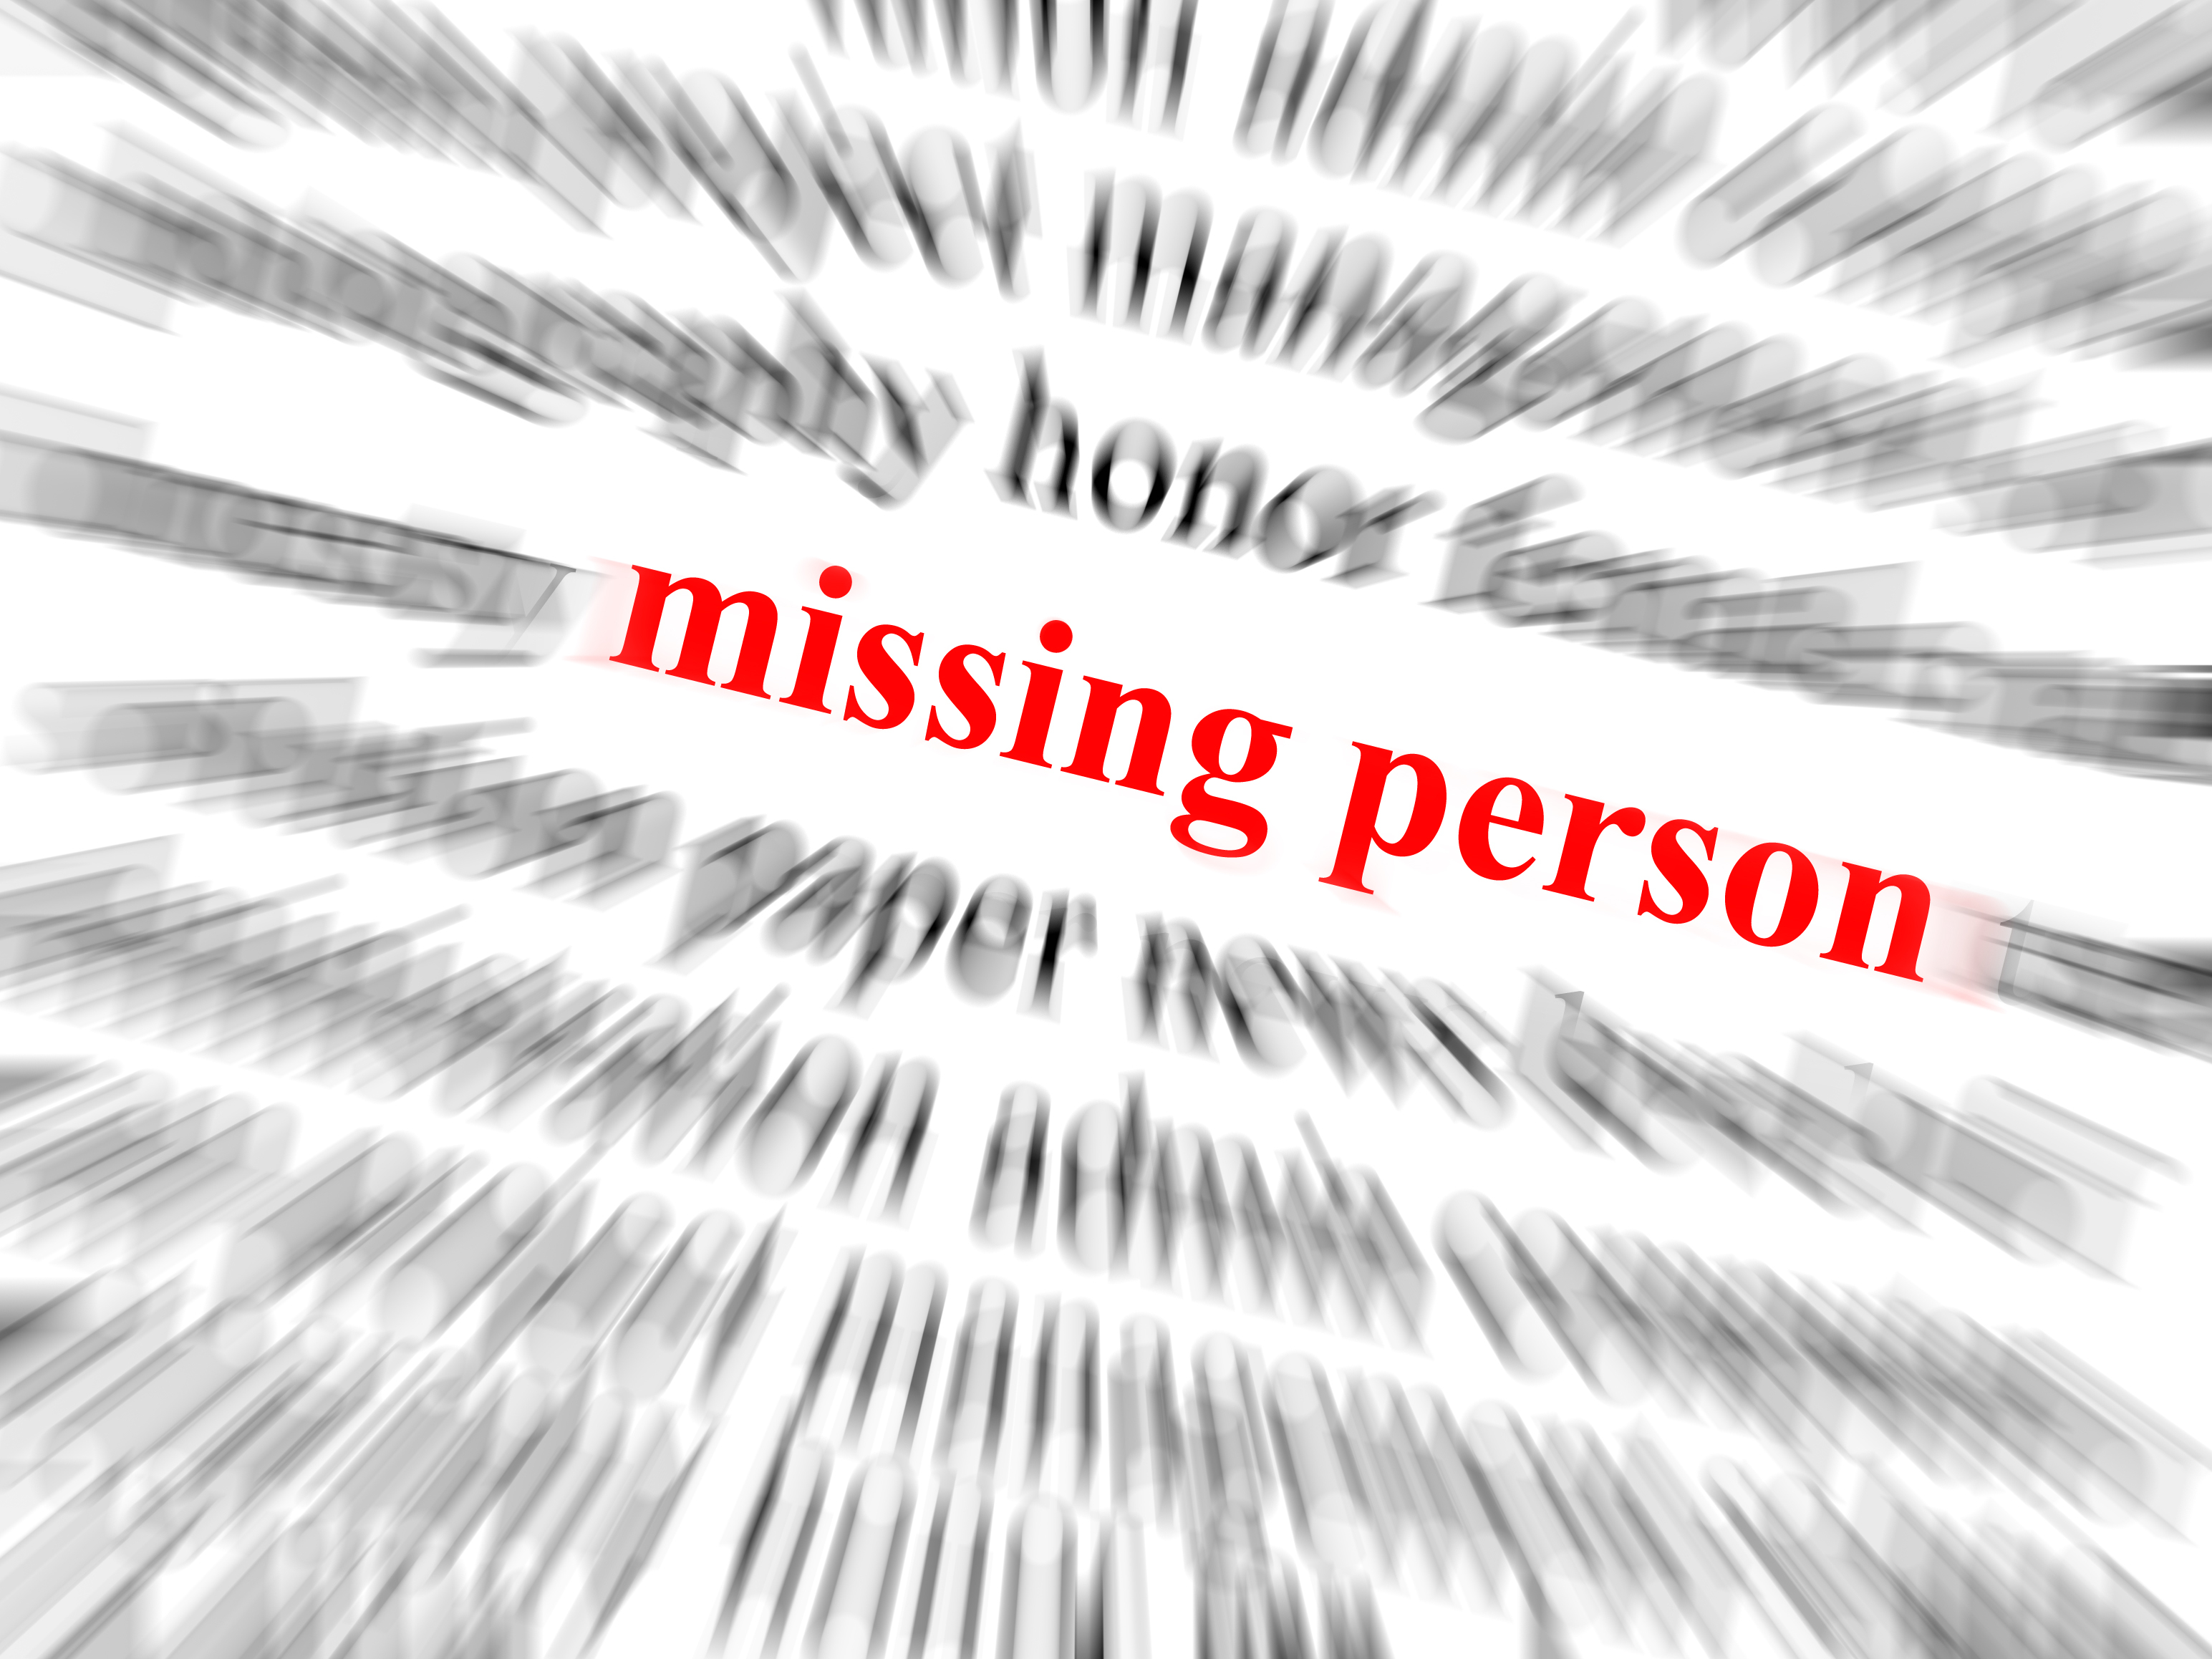 The text missing person in red and in focus.jpg Surrounding text blurred with zoom effect